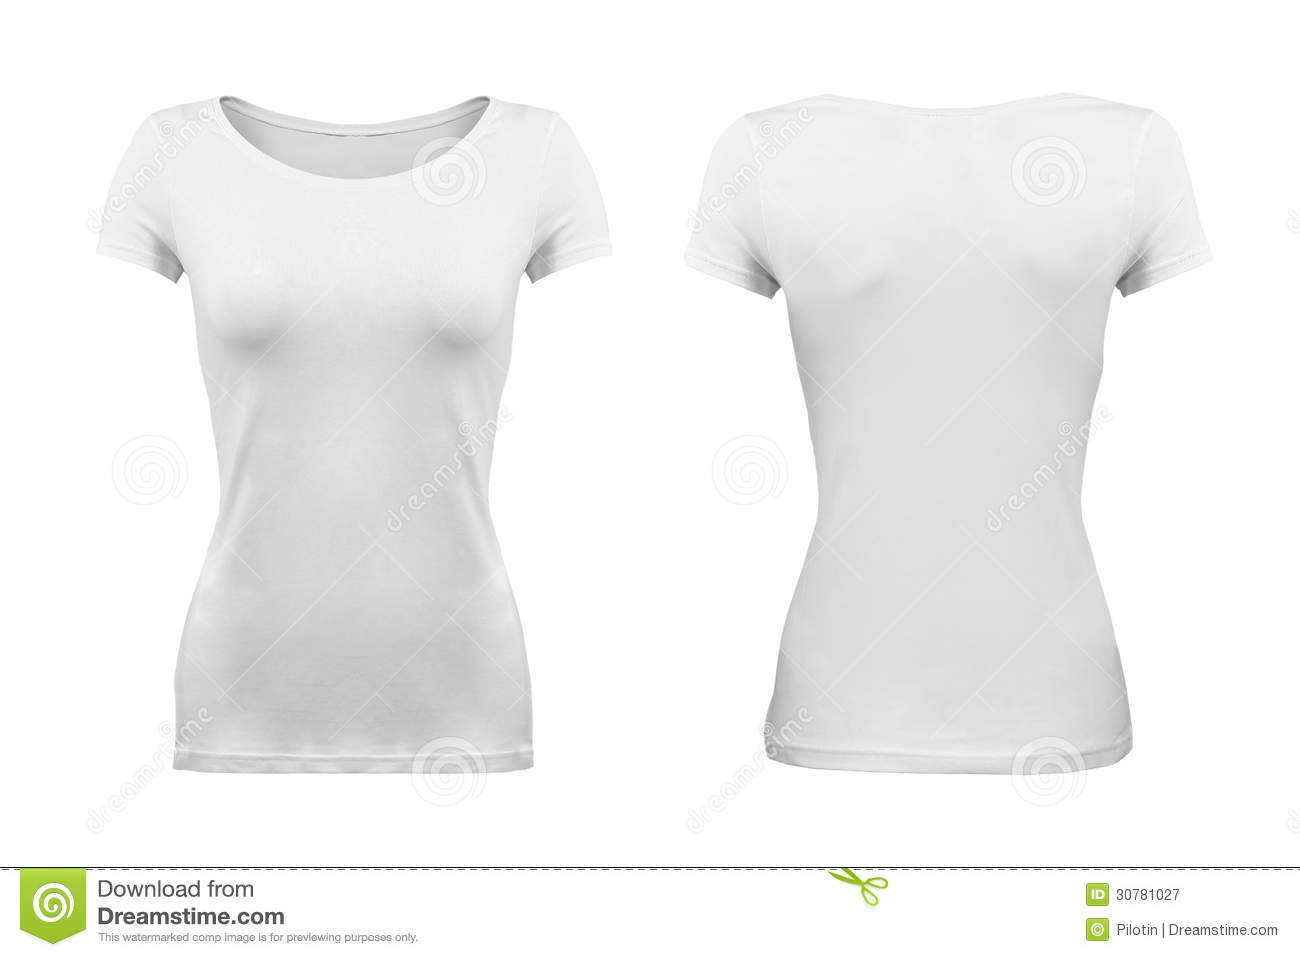 ... Shirt with hollow effect on white background; plain; front and back